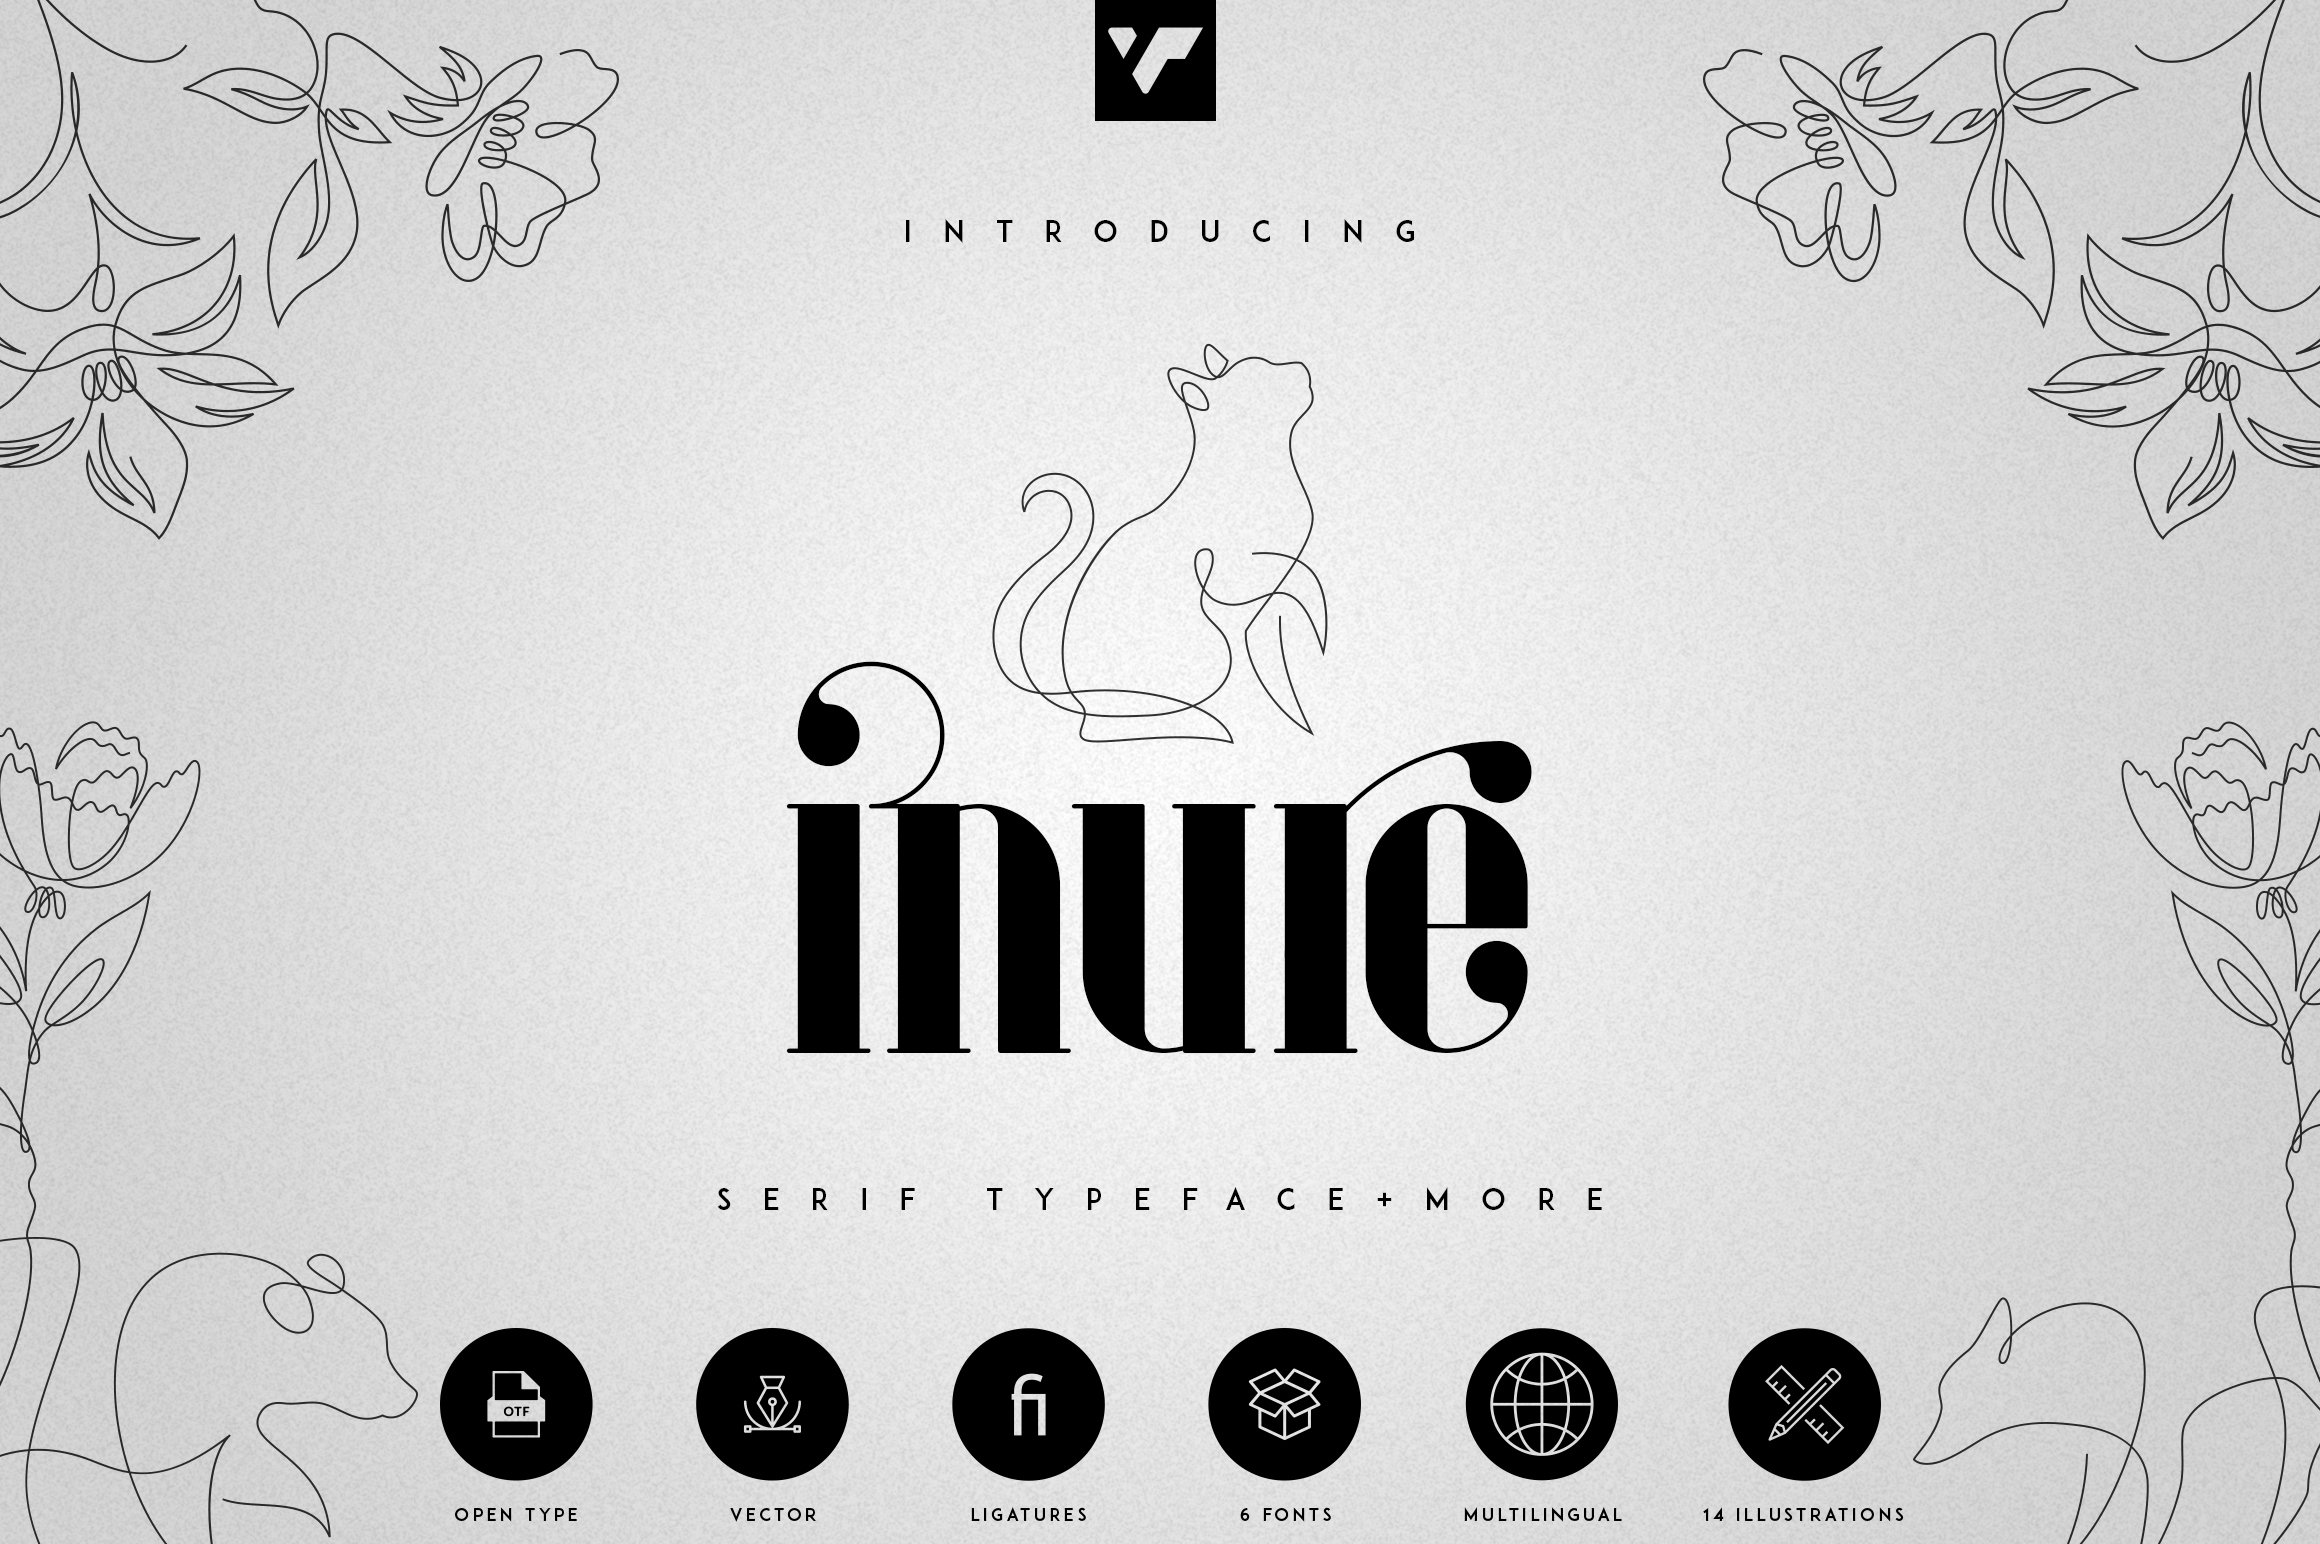 Inure - Serif Typeface More example image 1